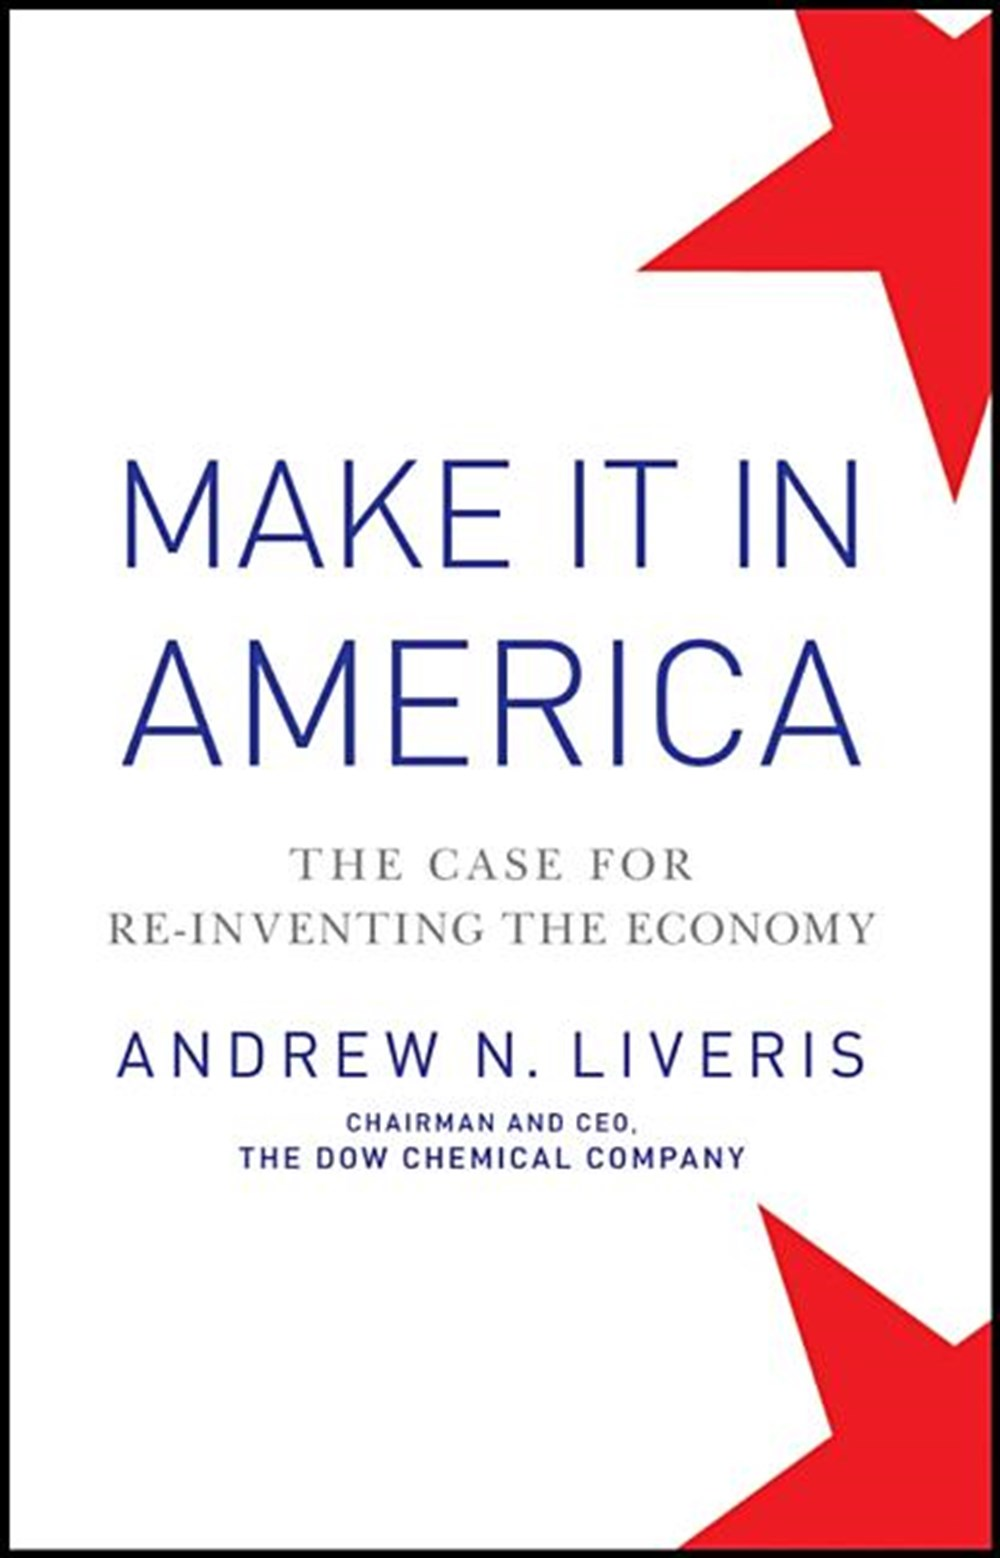 Make It in America The Case for Re-Inventing the Economy